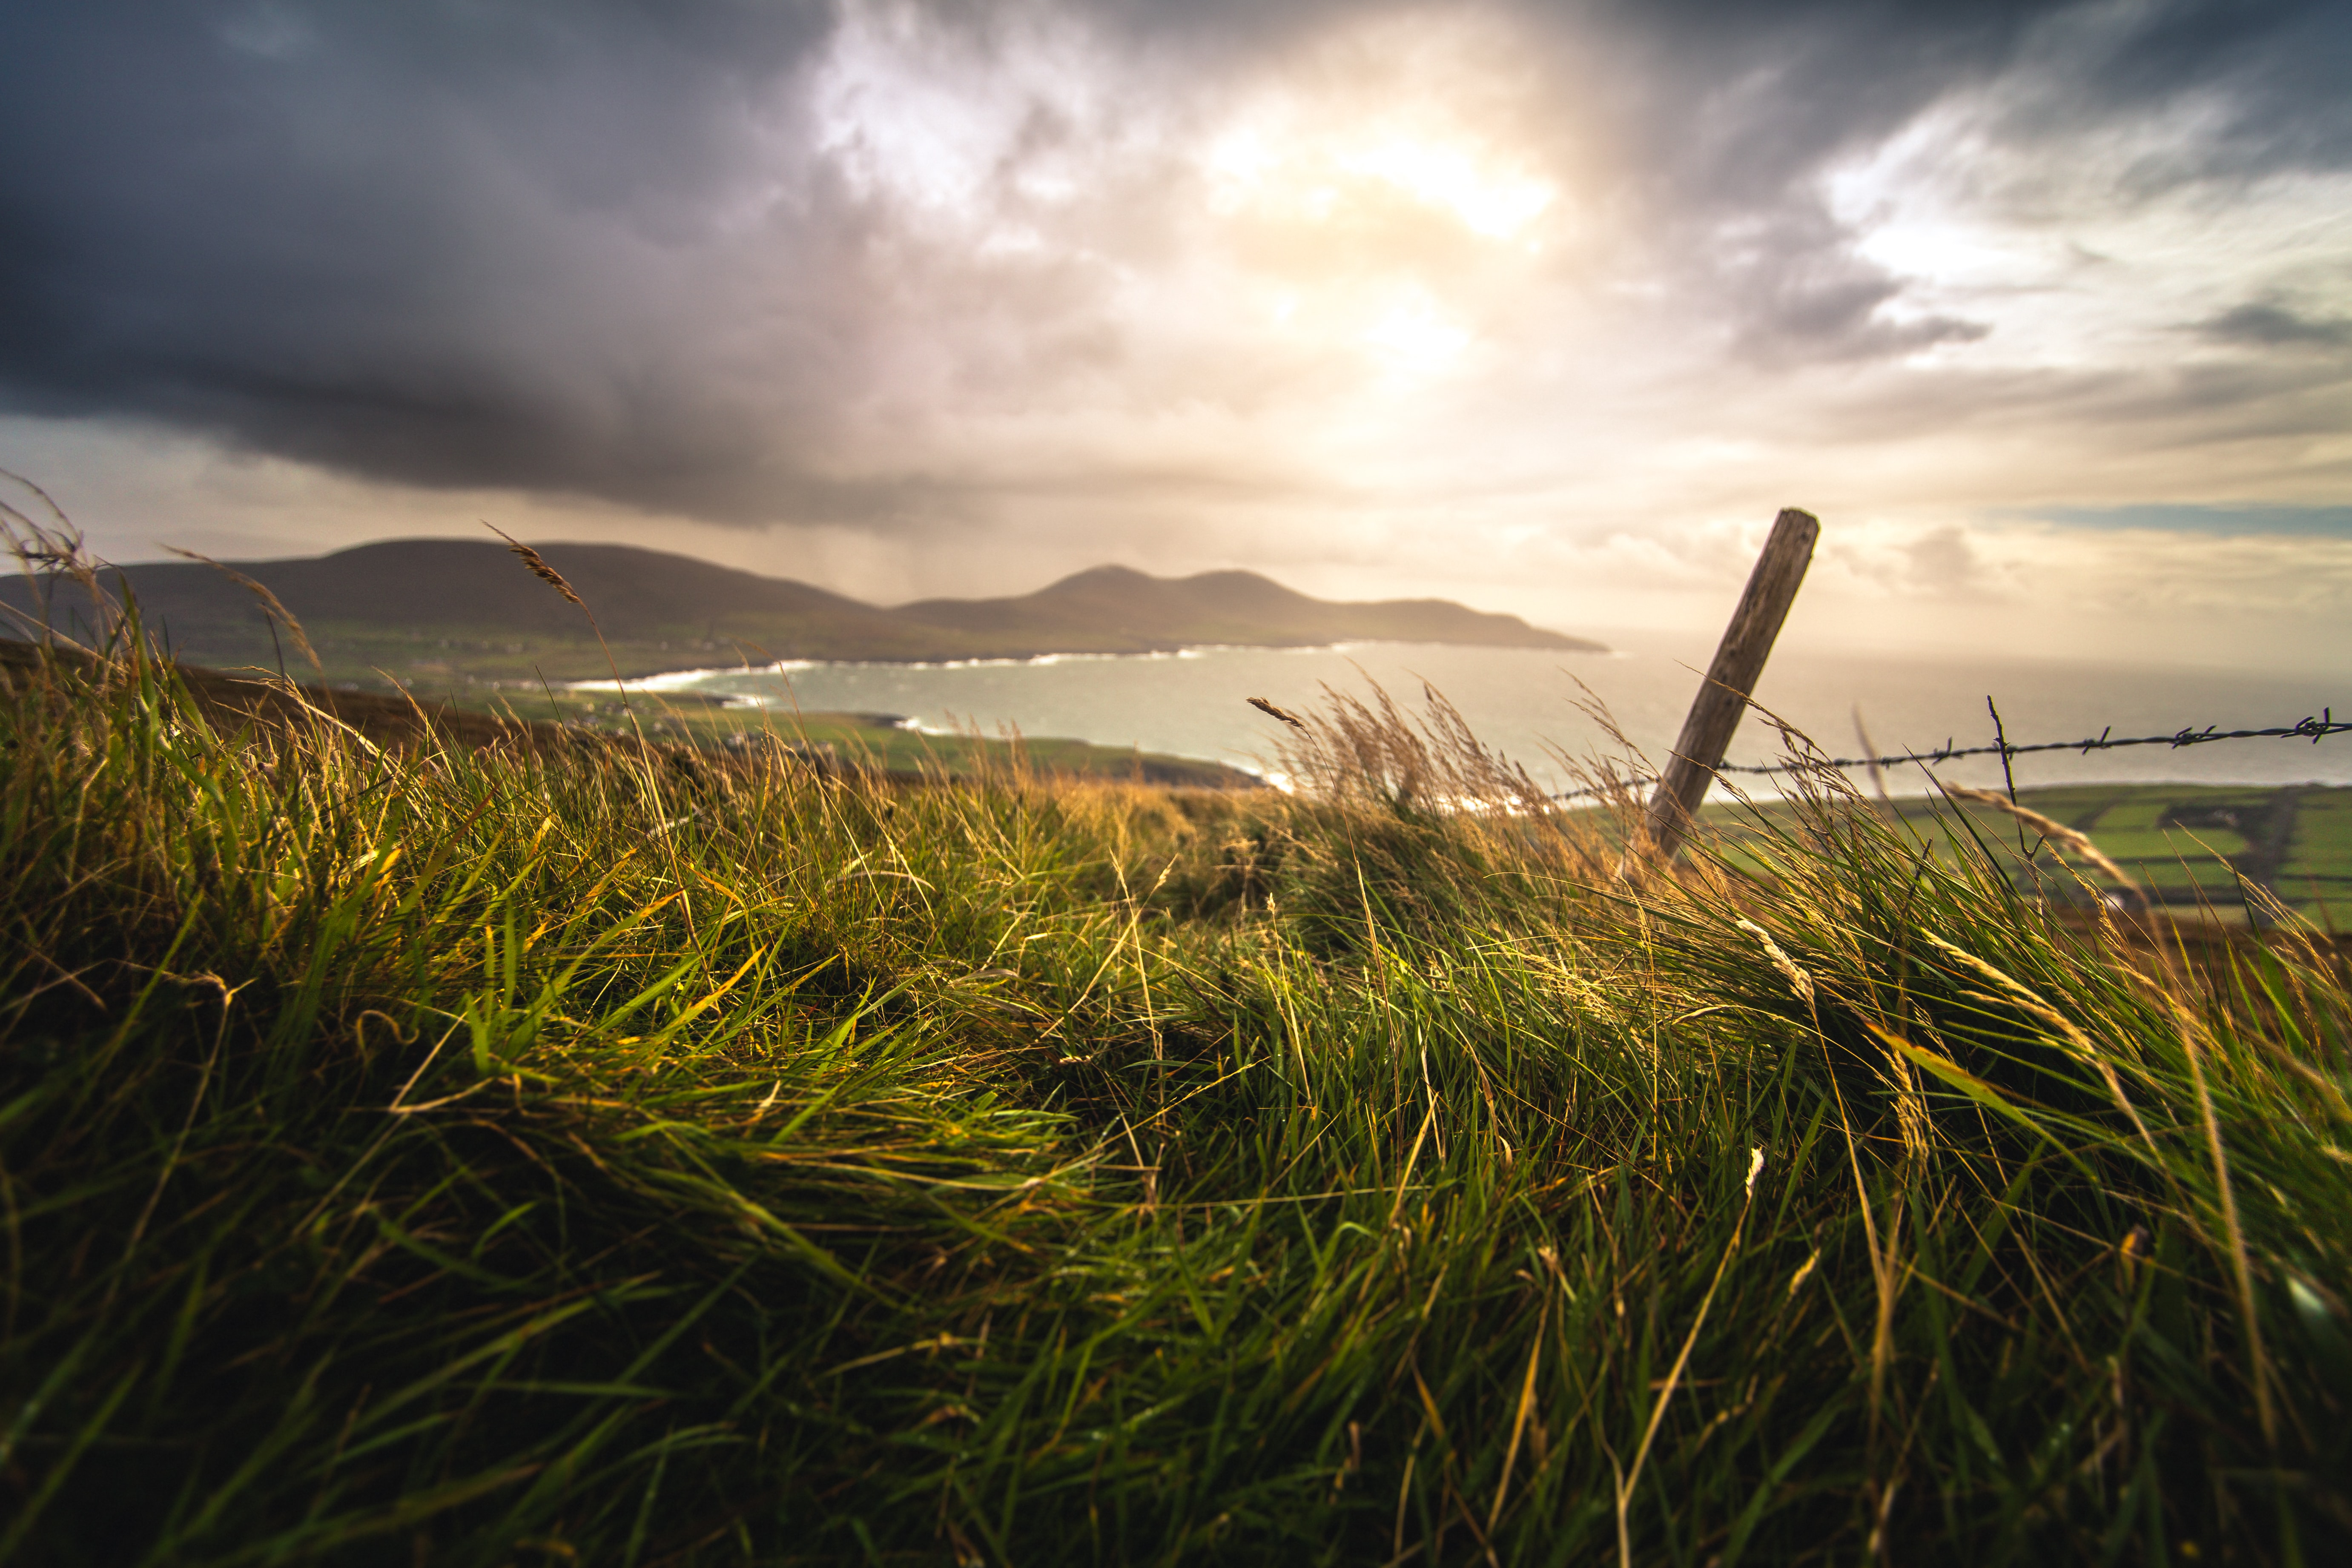 A barbed wire fence covered in green sea grass by a bay in Ireland at golden hour